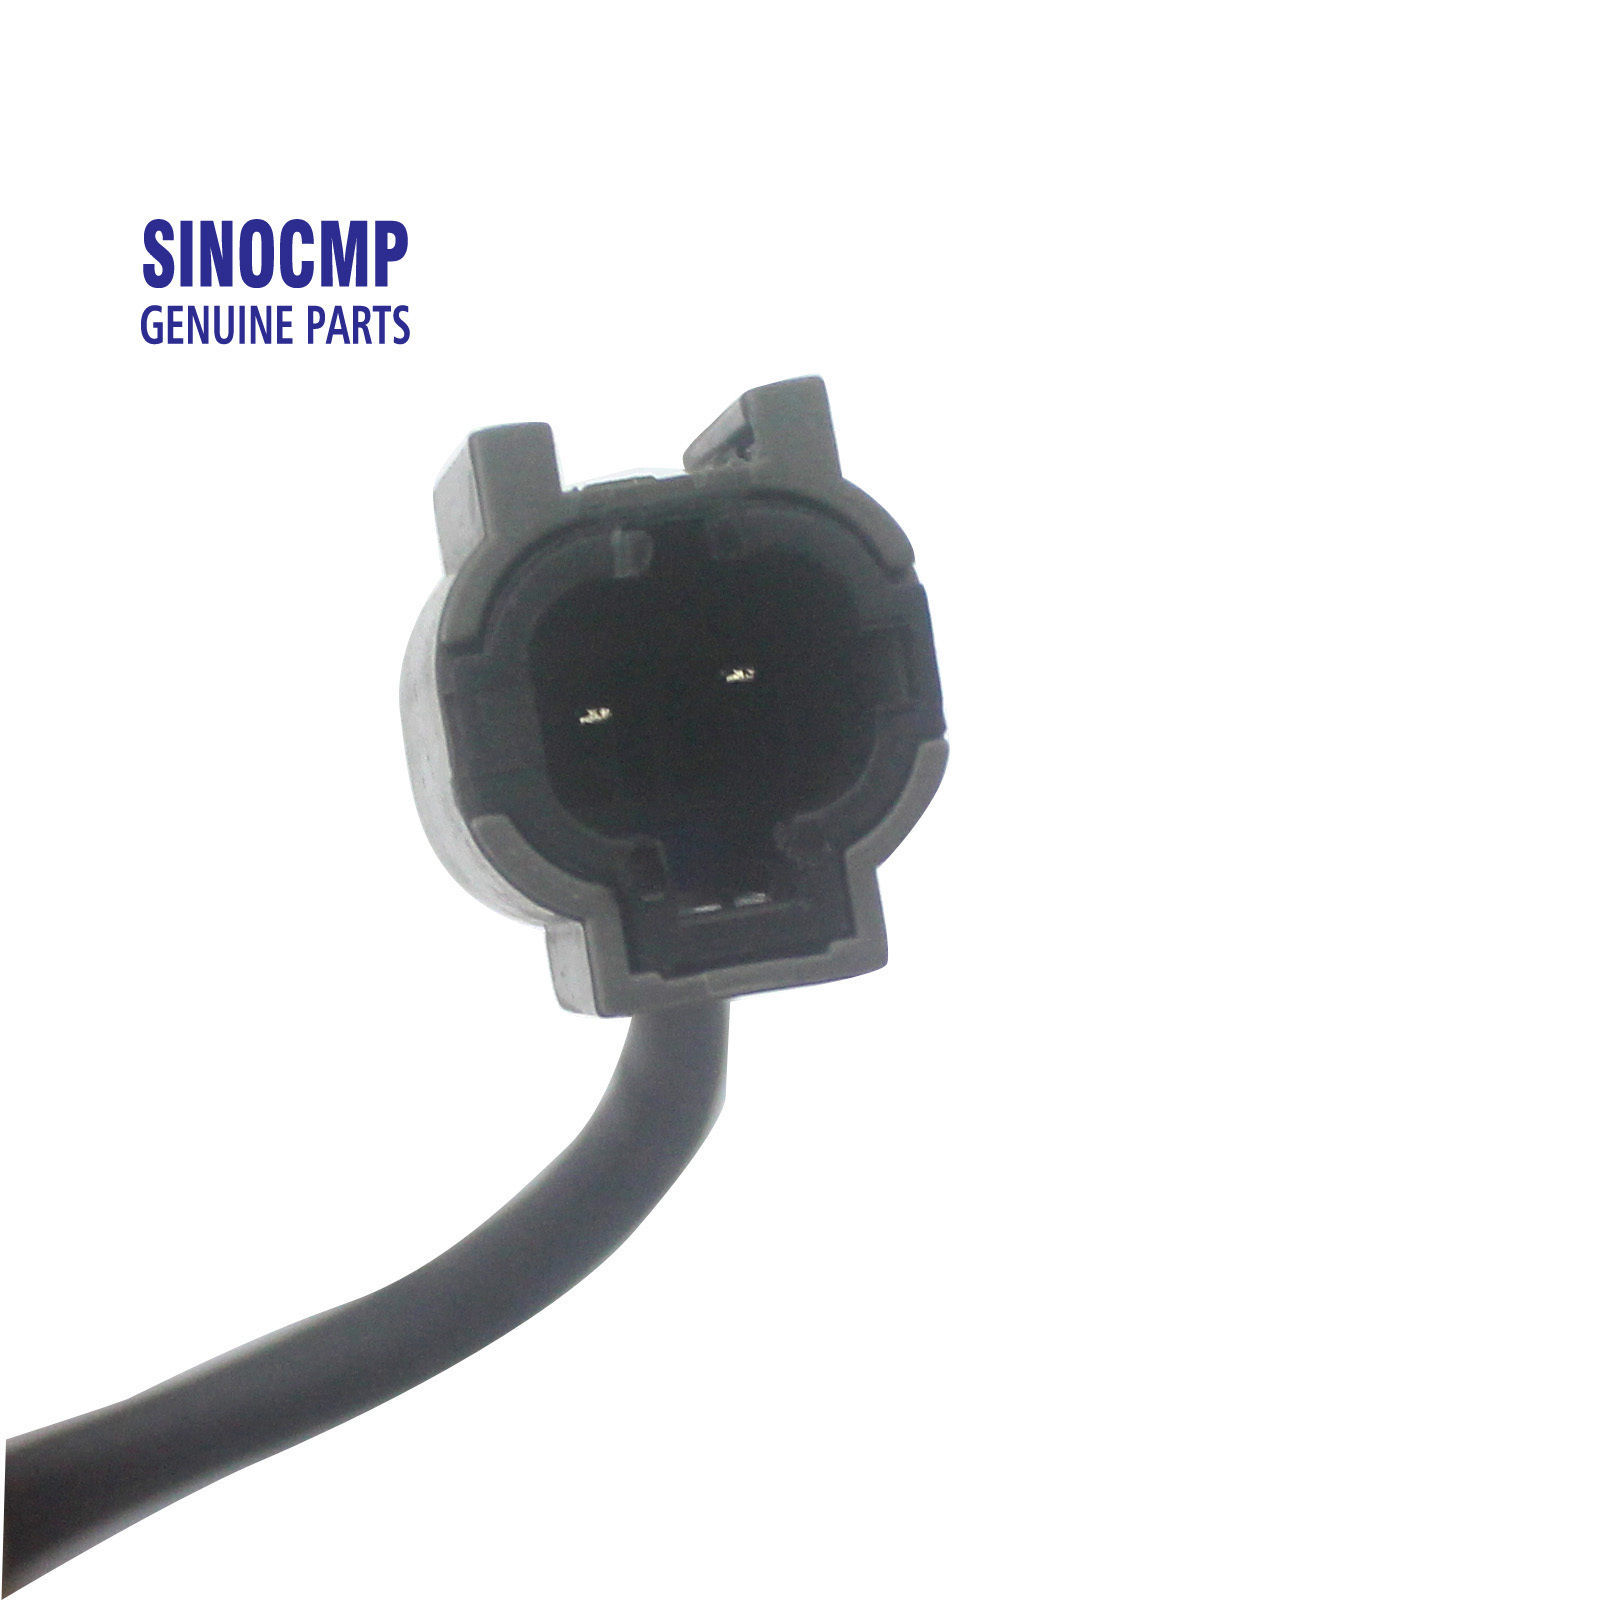 Revolution Speed Sensor For Hitachi Zaxis ZAX ZX200-1 Excavator Parts